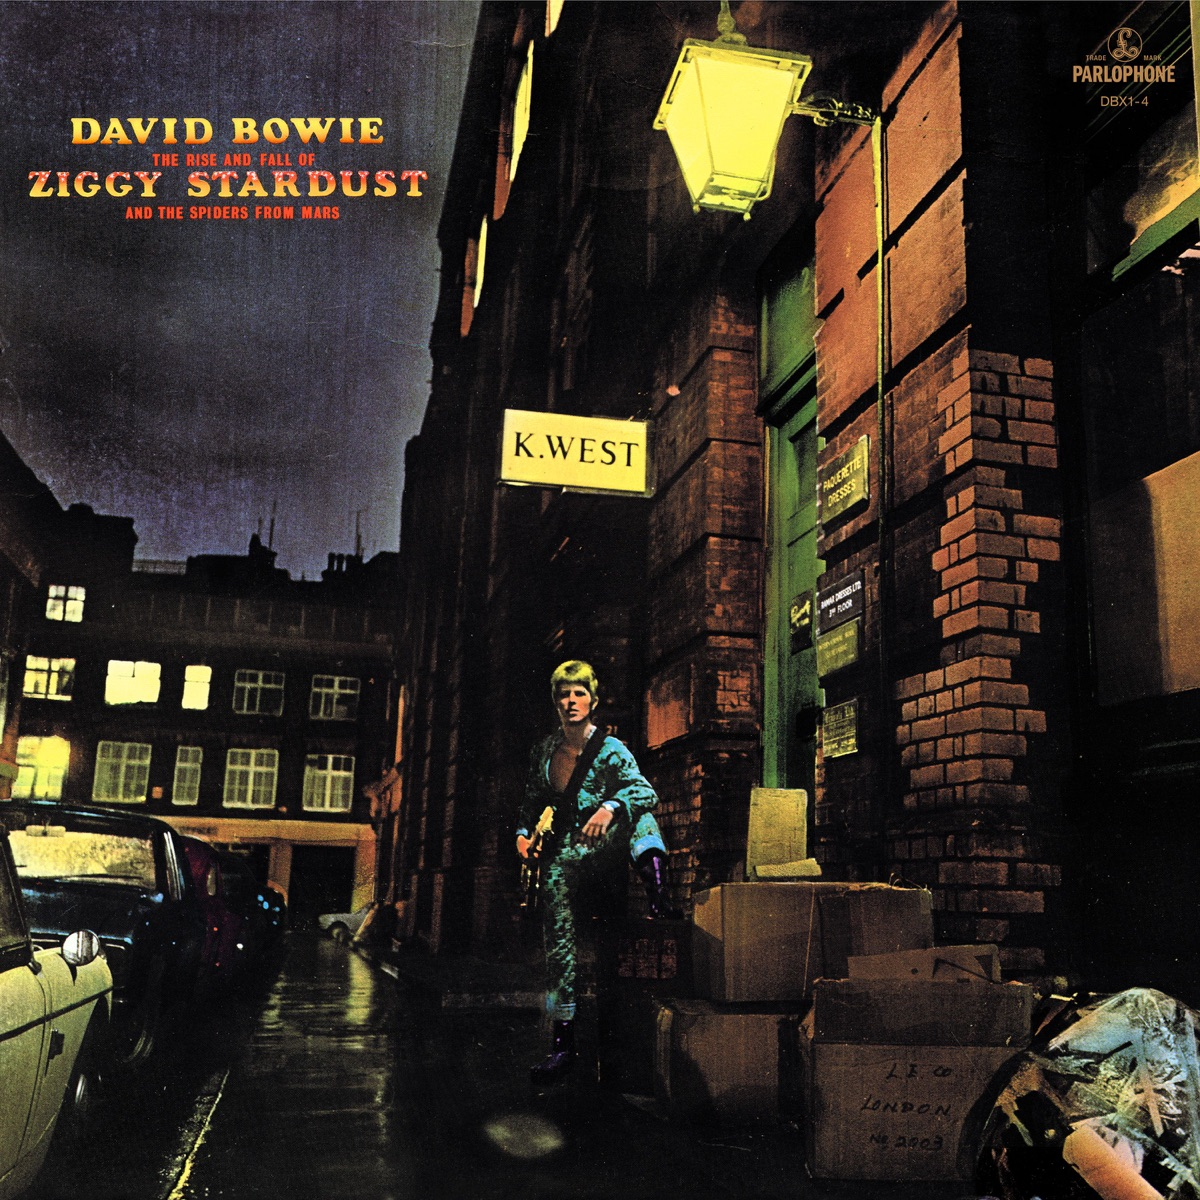 The Rise and Fall of Ziggy Stardust and the Spiders From Mars 2012 Remastered Version David Bowie CD cover